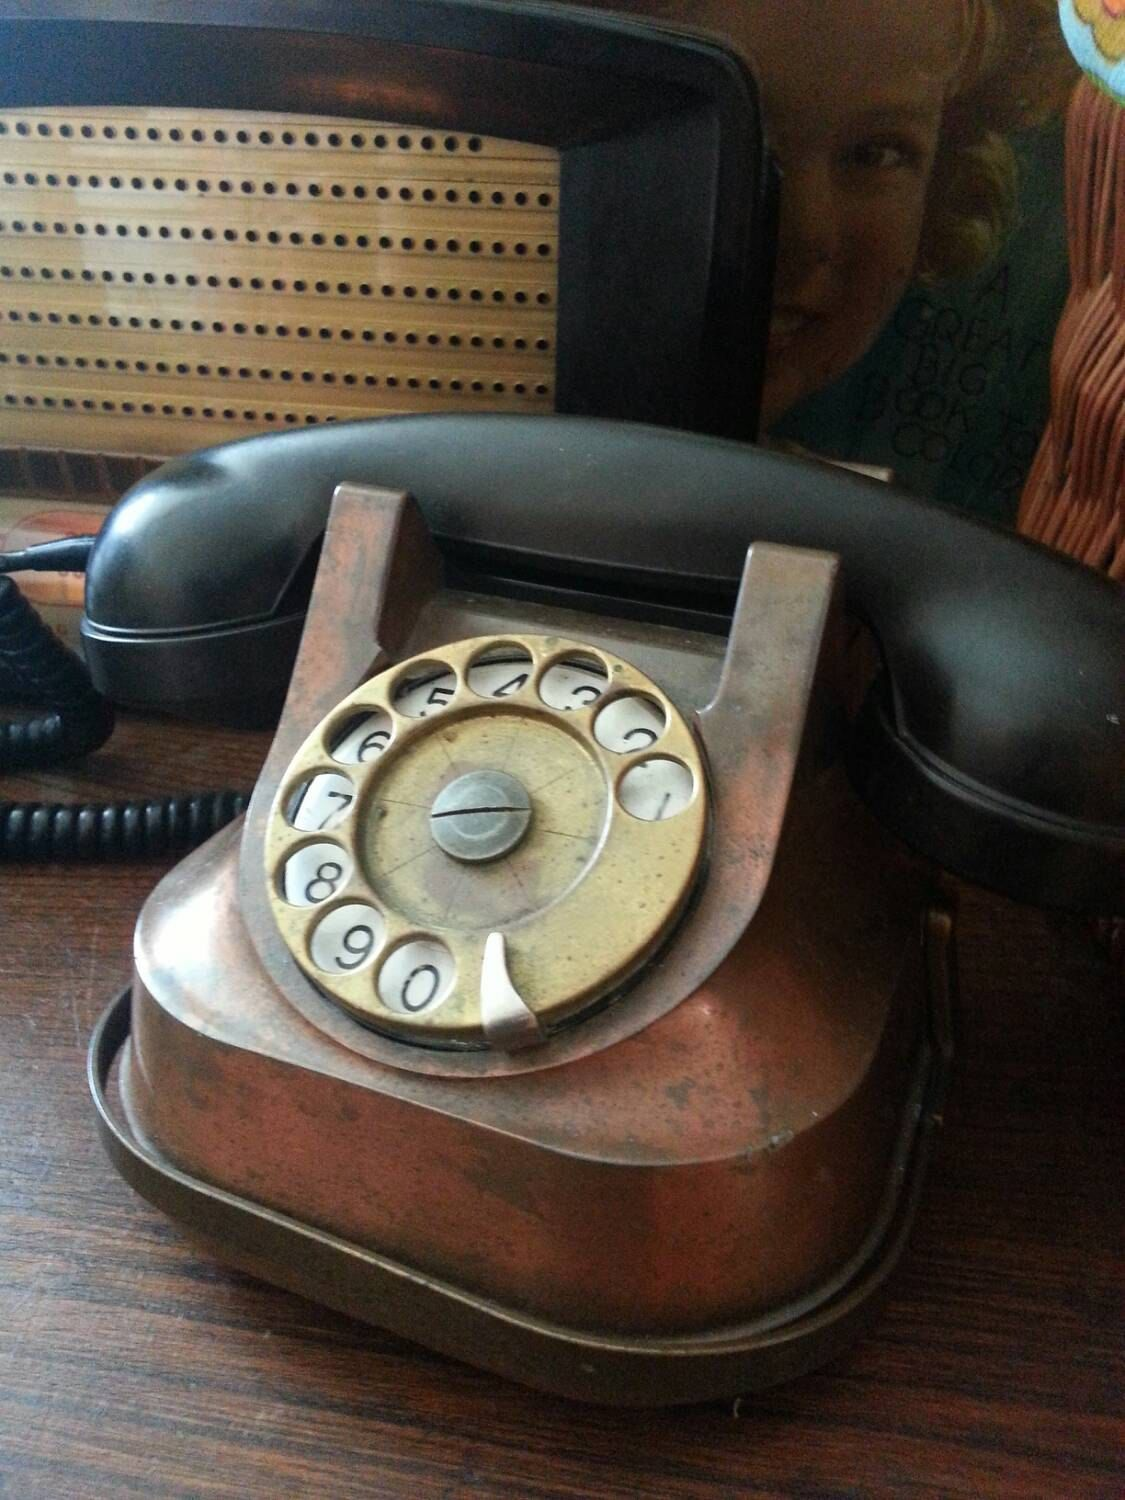 Rare c1930-50s Copper-Faced, Brass-Detailed Bakelite Steampunk Rotary Phone by BacktotheFuchsiaShop on Etsy https://www.etsy.com/listing/236020965/rare-c1930-50s-copper-faced-brass